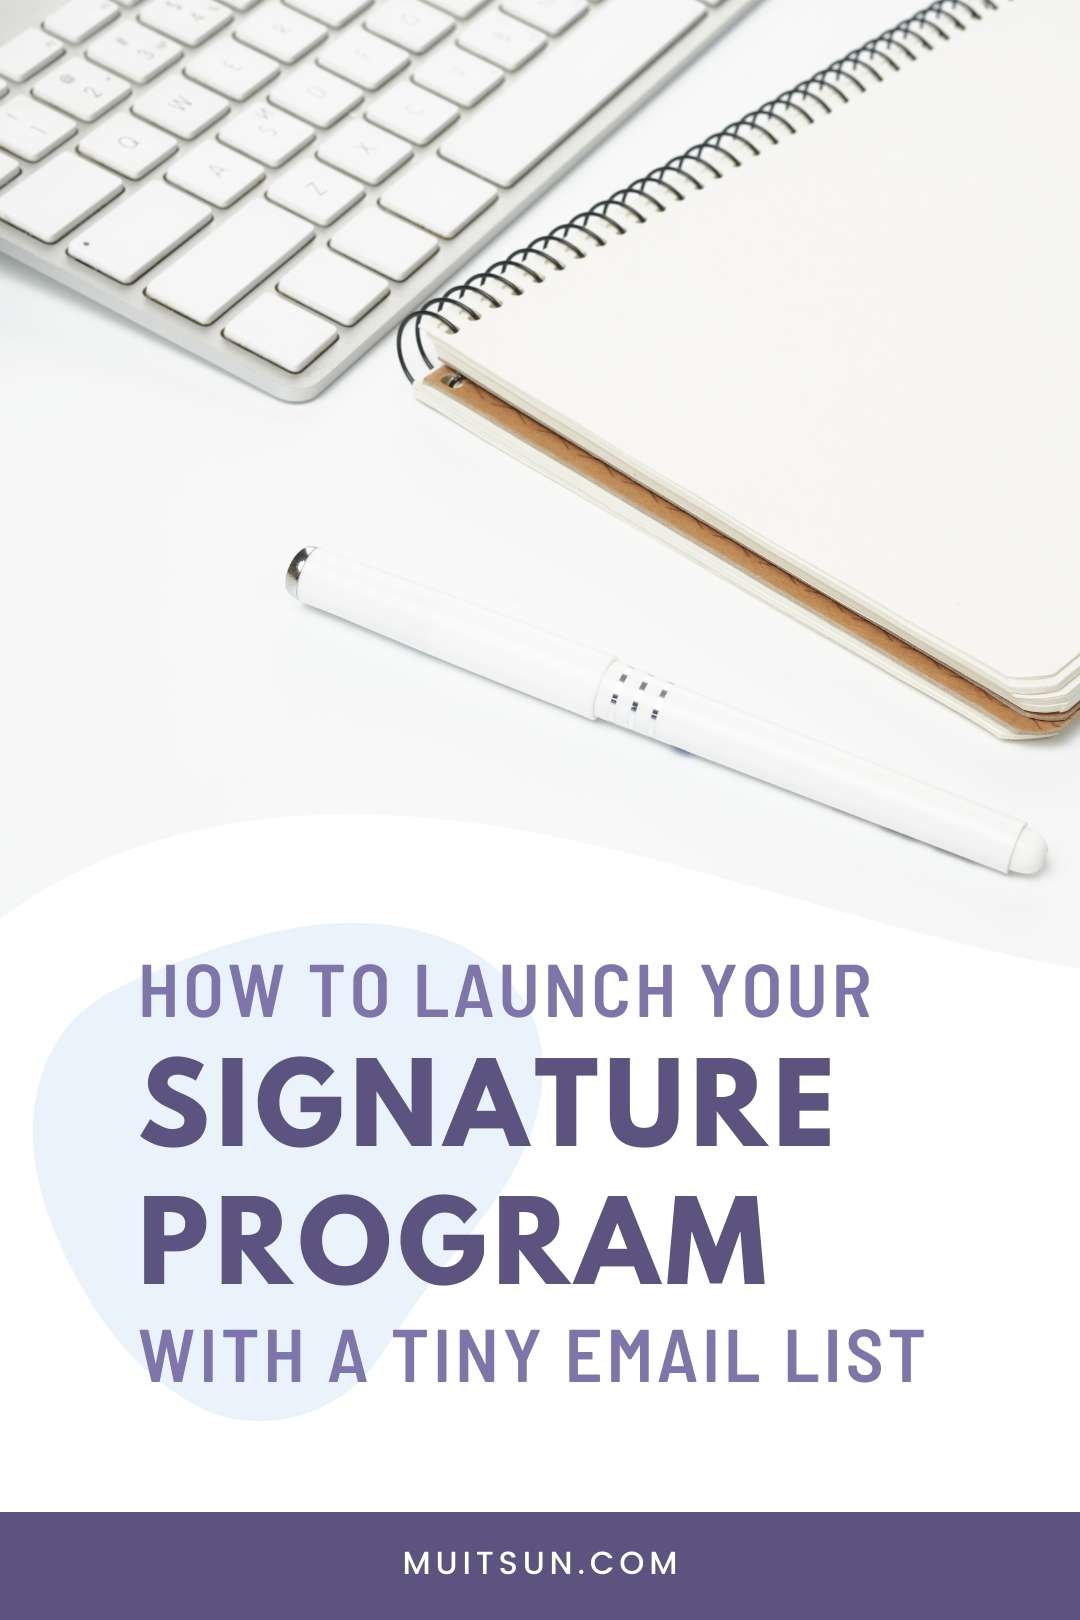 How To Launch Your Signature Program With A Tiny Email List